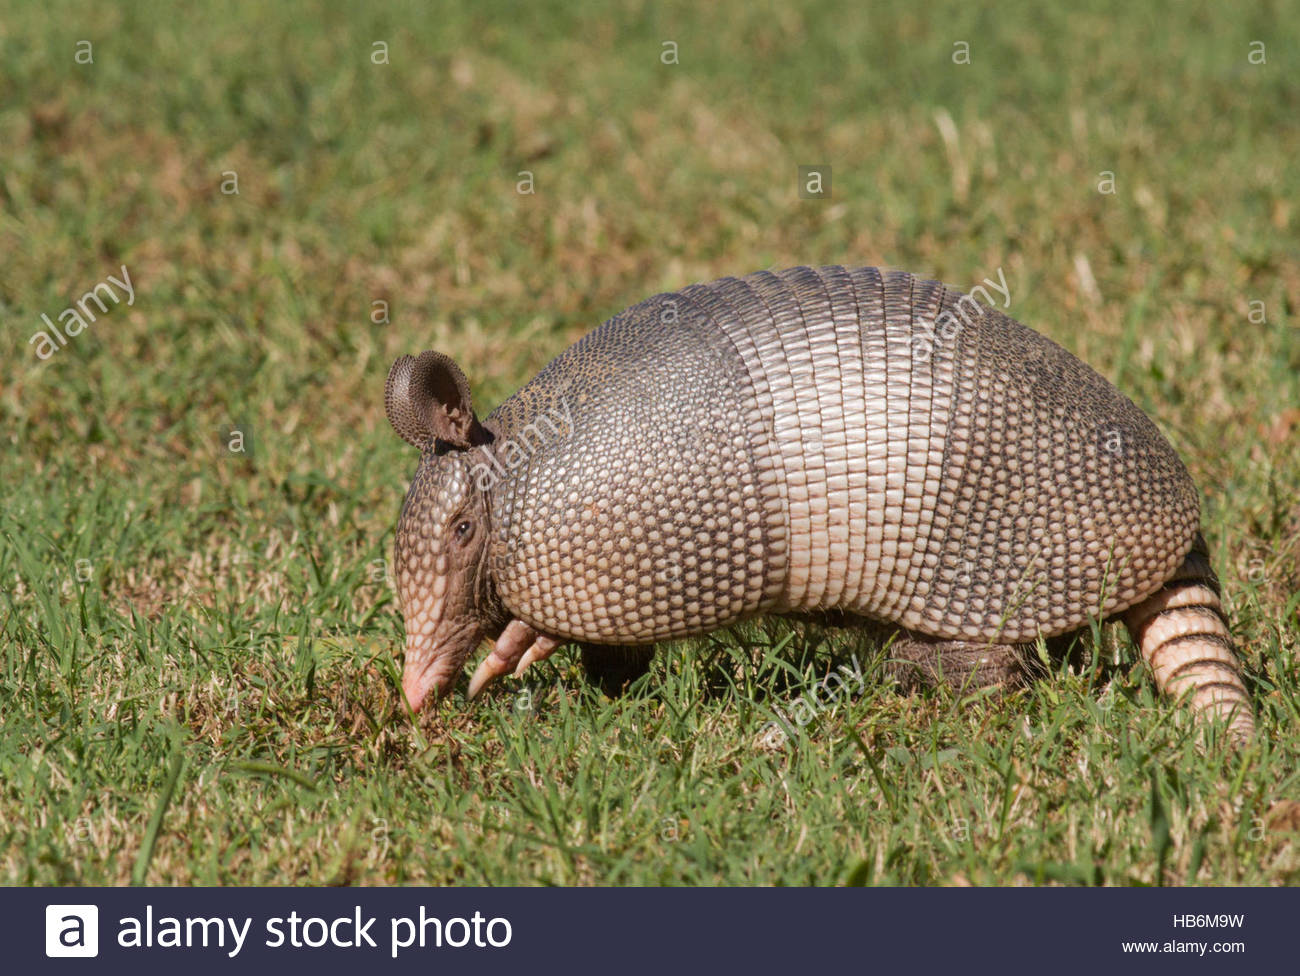 A hungry 9-Banded Armadillo (Dasypus novemcinctus) digging for food in a state park. - Stock Image